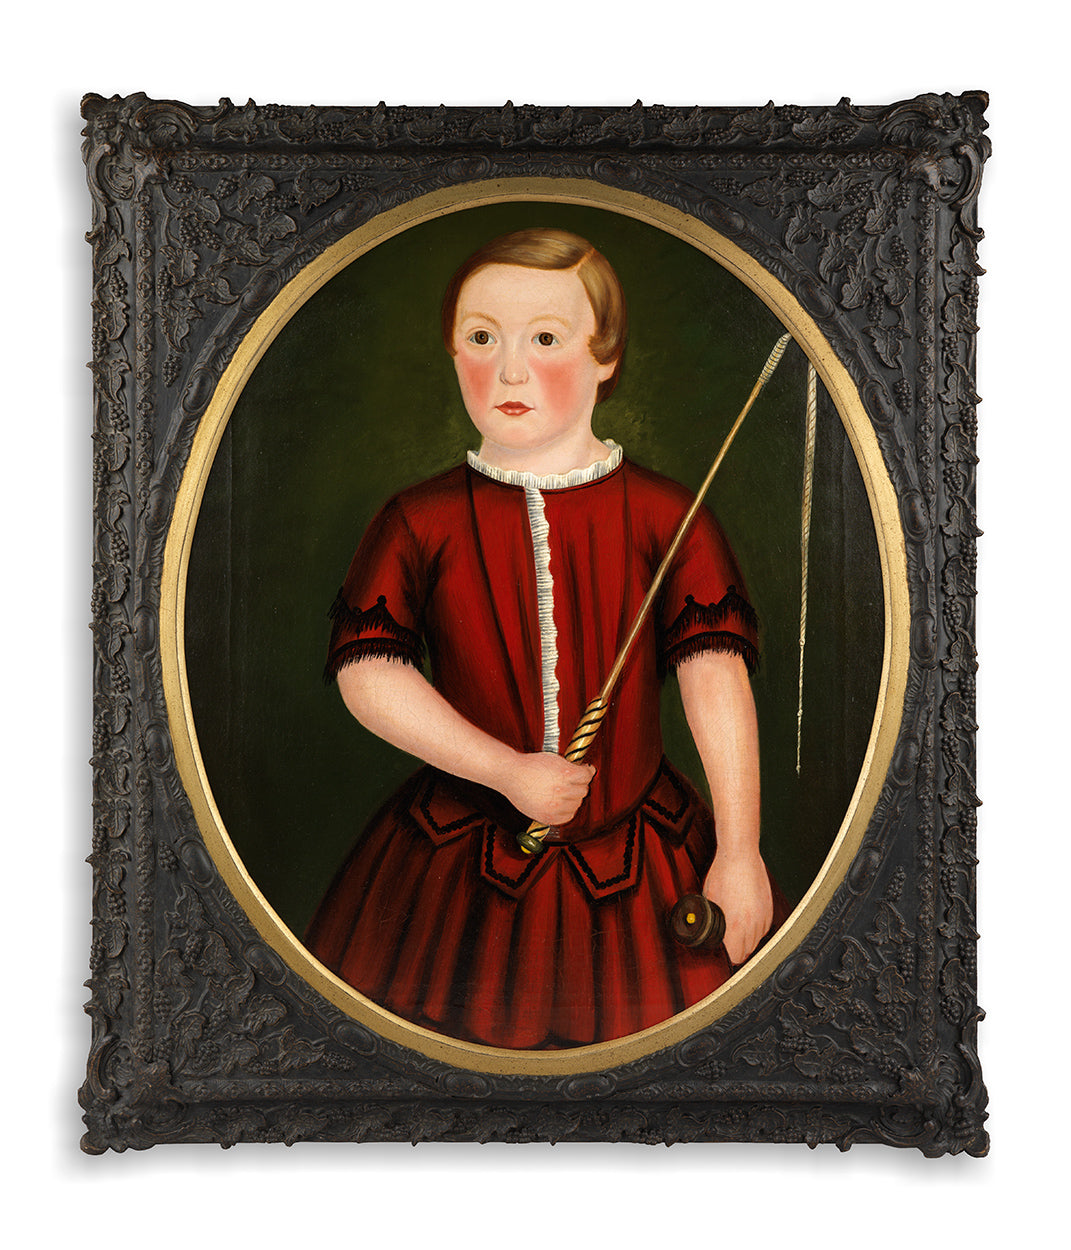 A Fine English Naïve School Oval Child Portrait